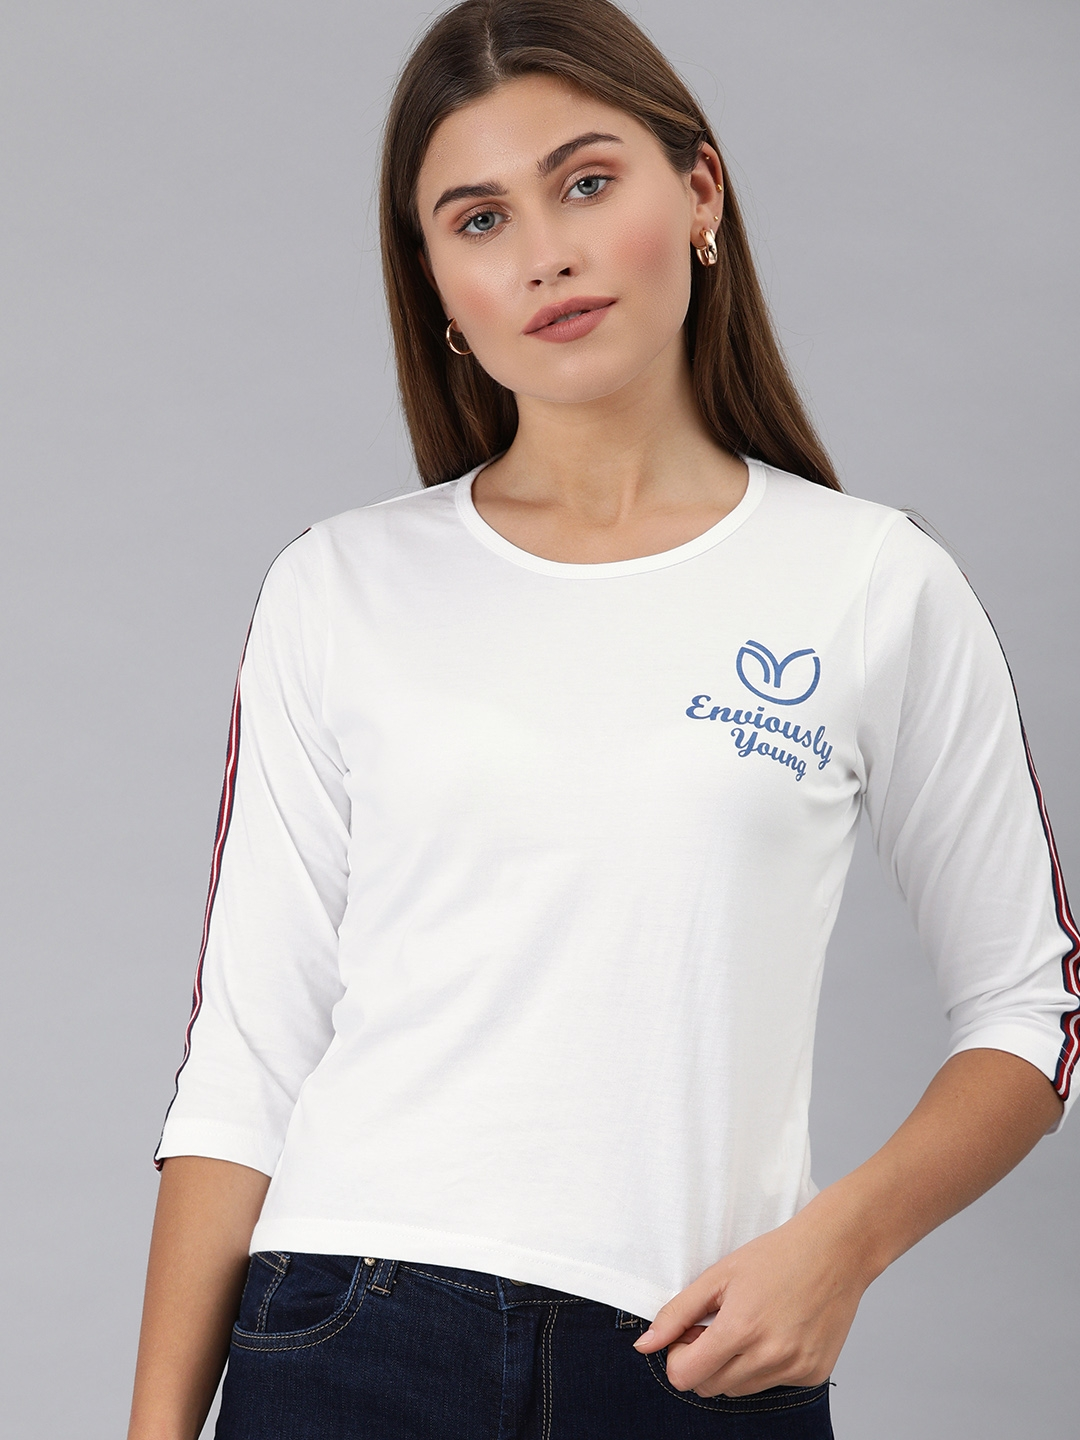 Enviously Young Women White Printed Round Neck T shirt with Side Stripes